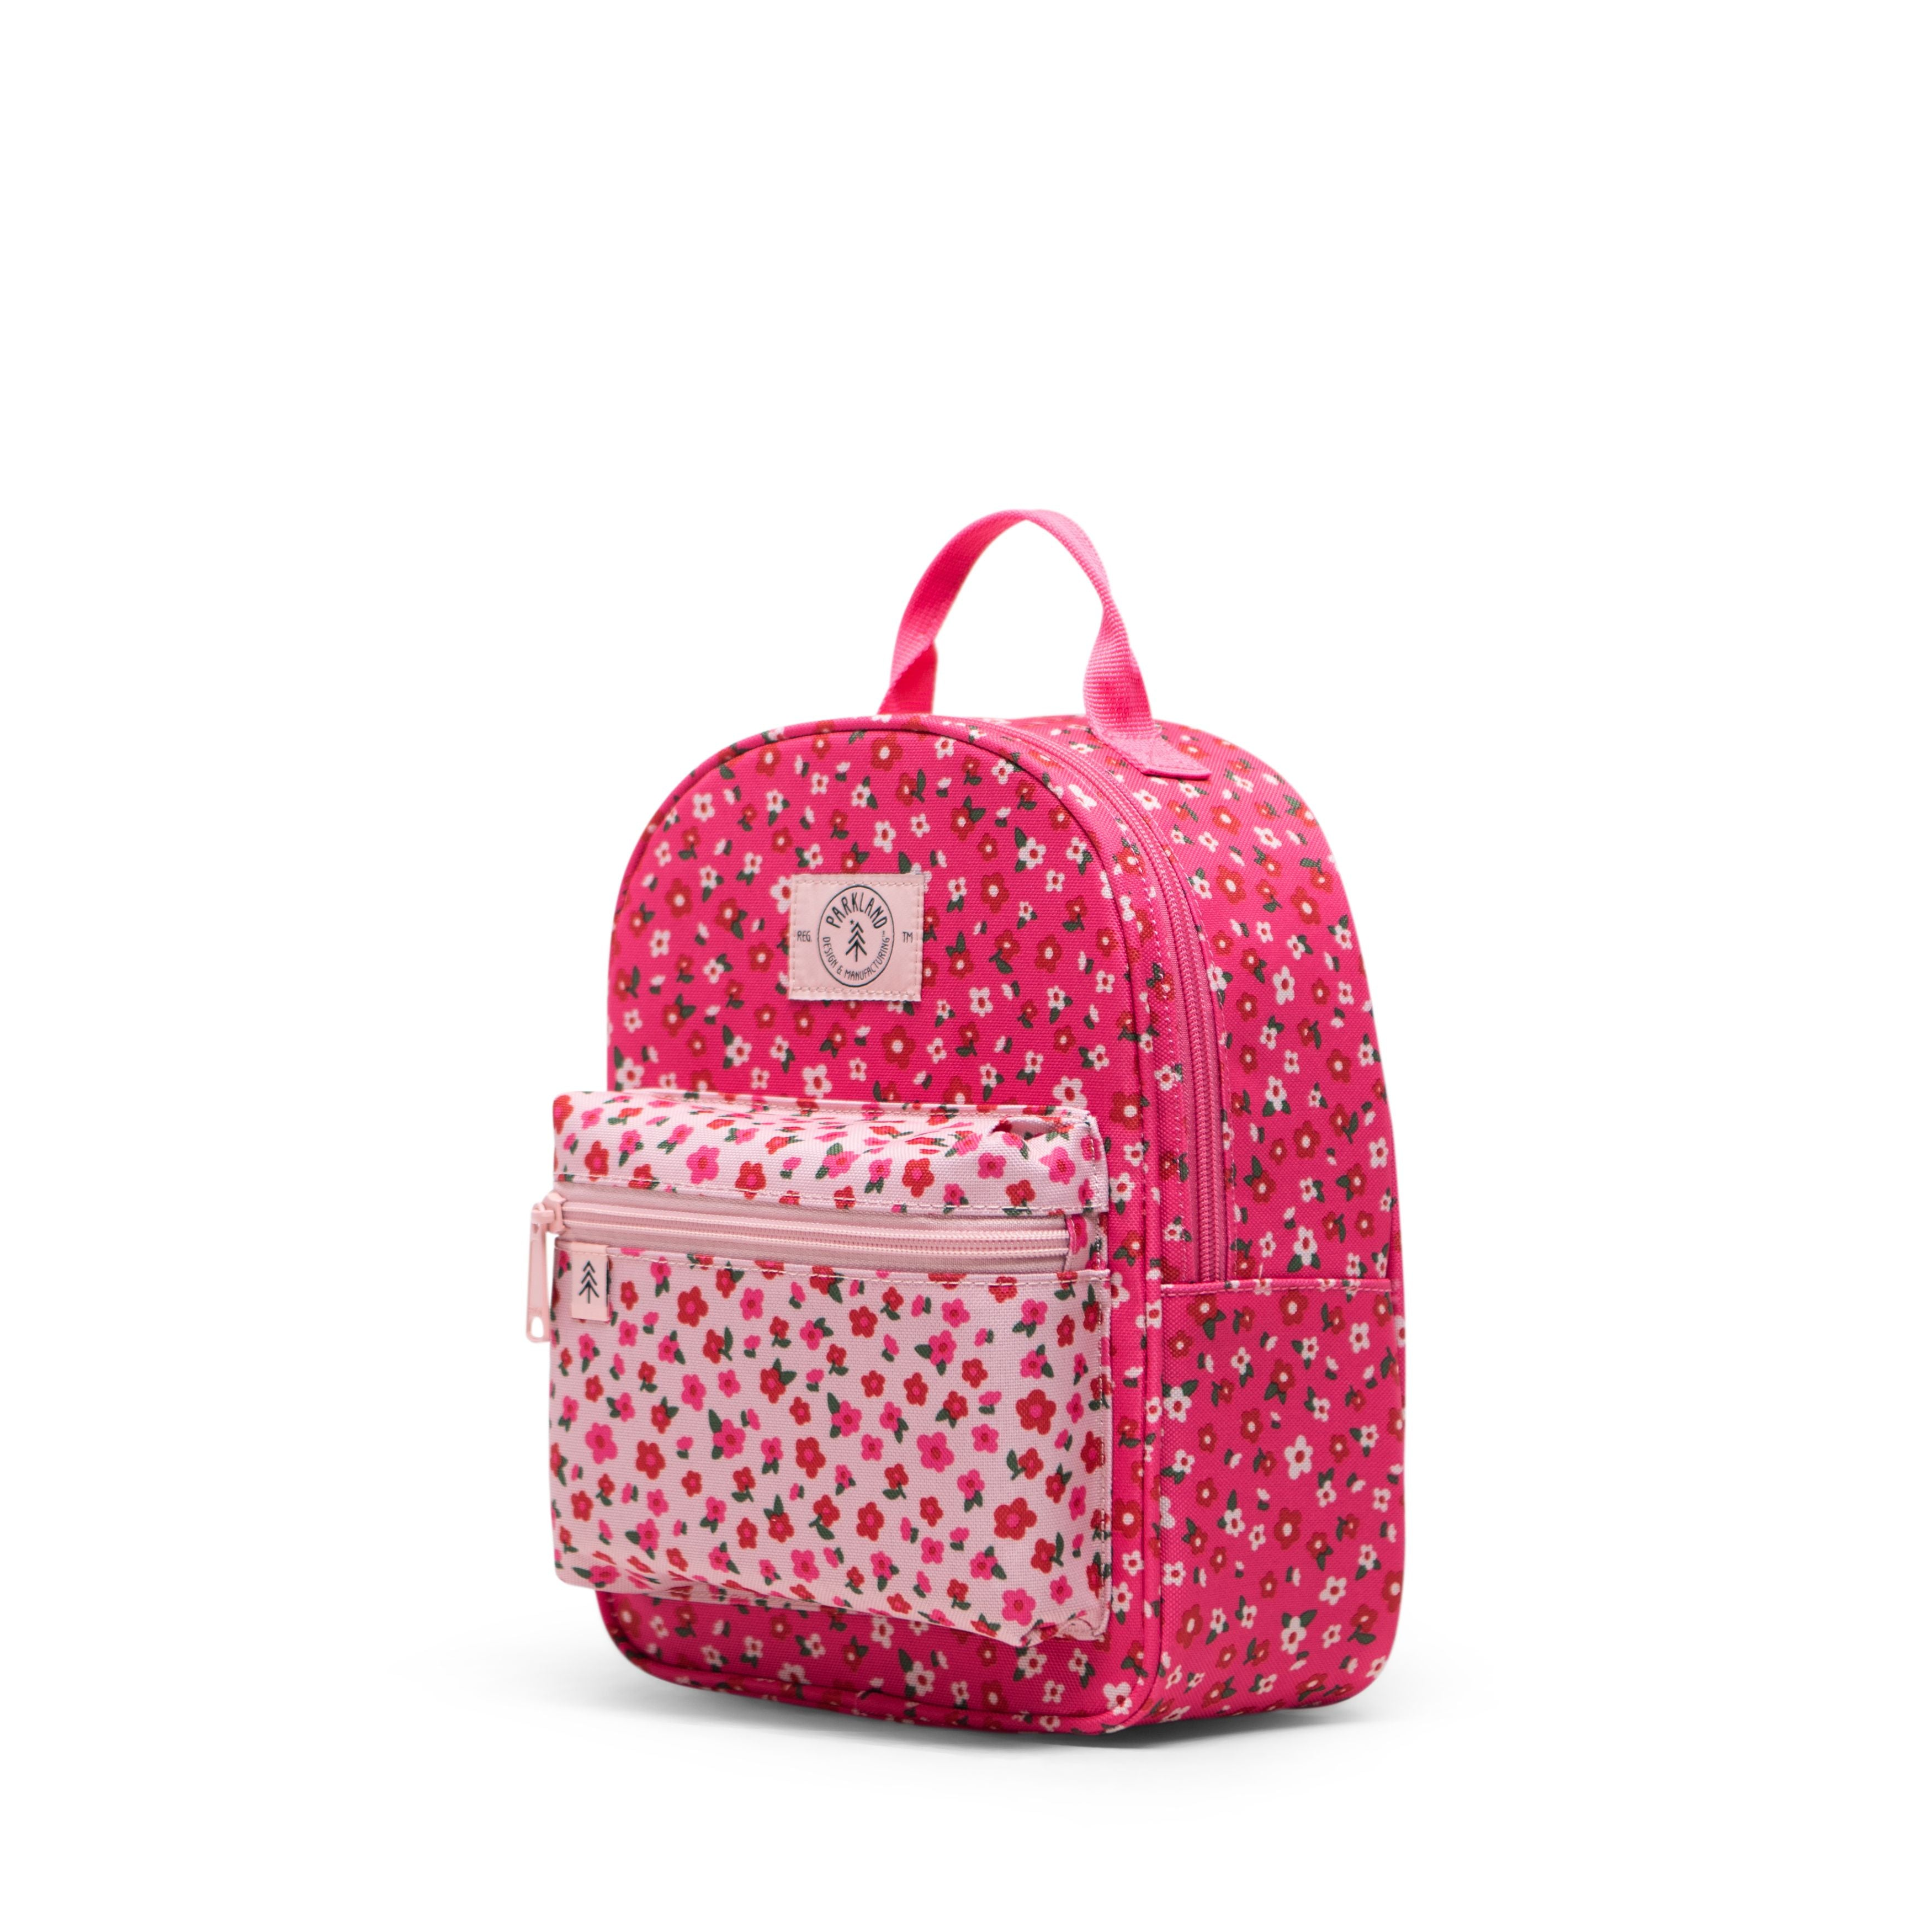 Forget Me Not Backpack | Goldie